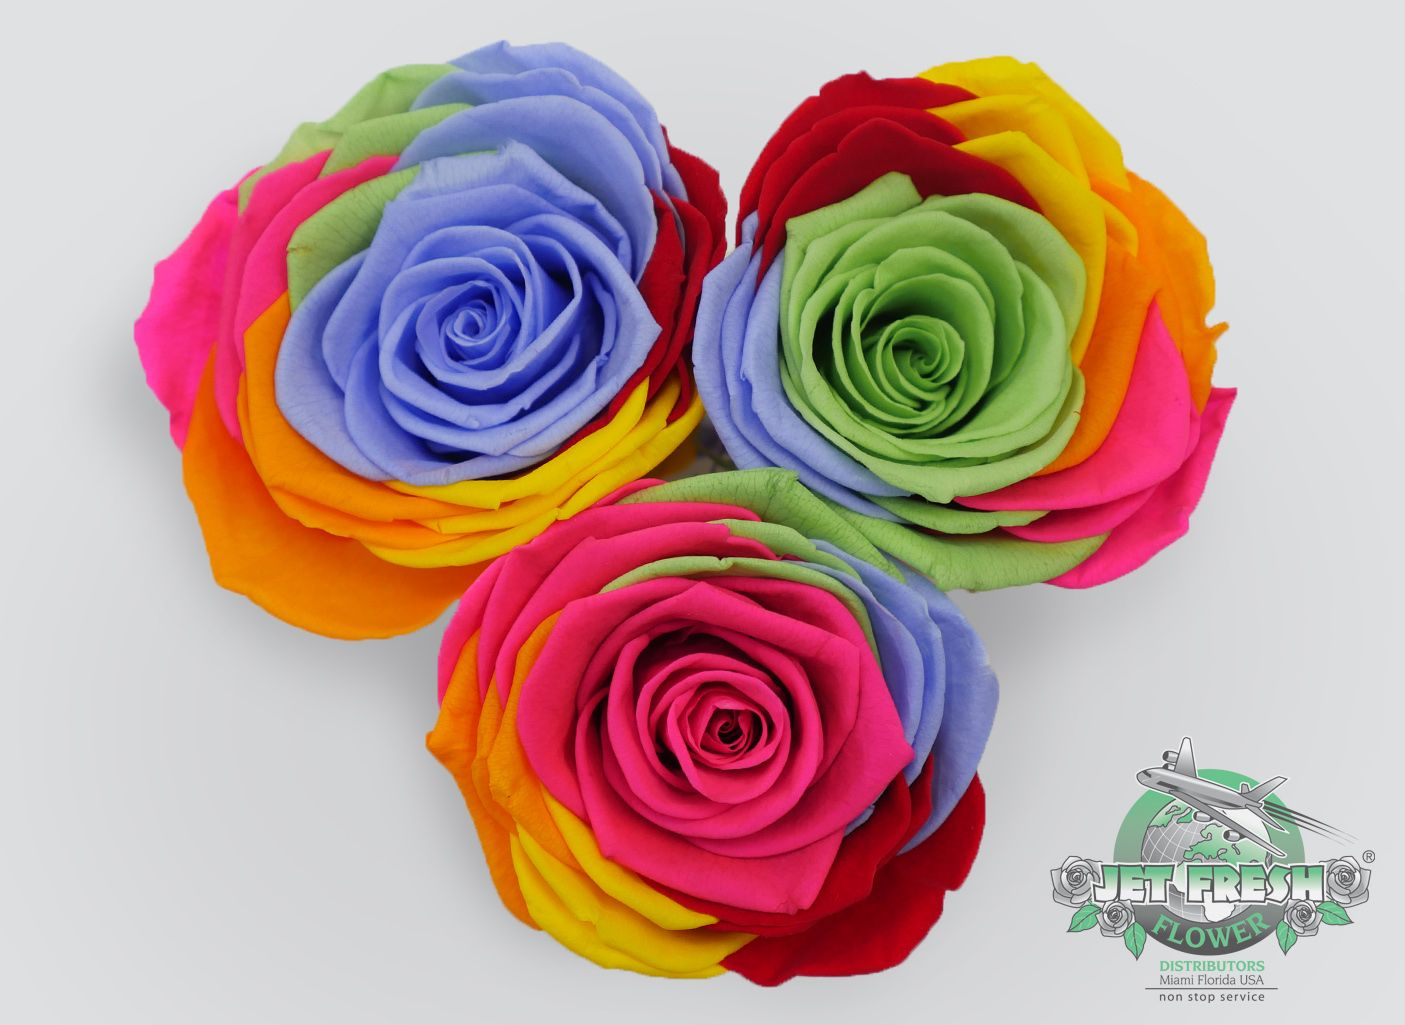 Rainbow Preserved Roses Are Available Now In Diffe Color Combinations Contact Jet Fresh